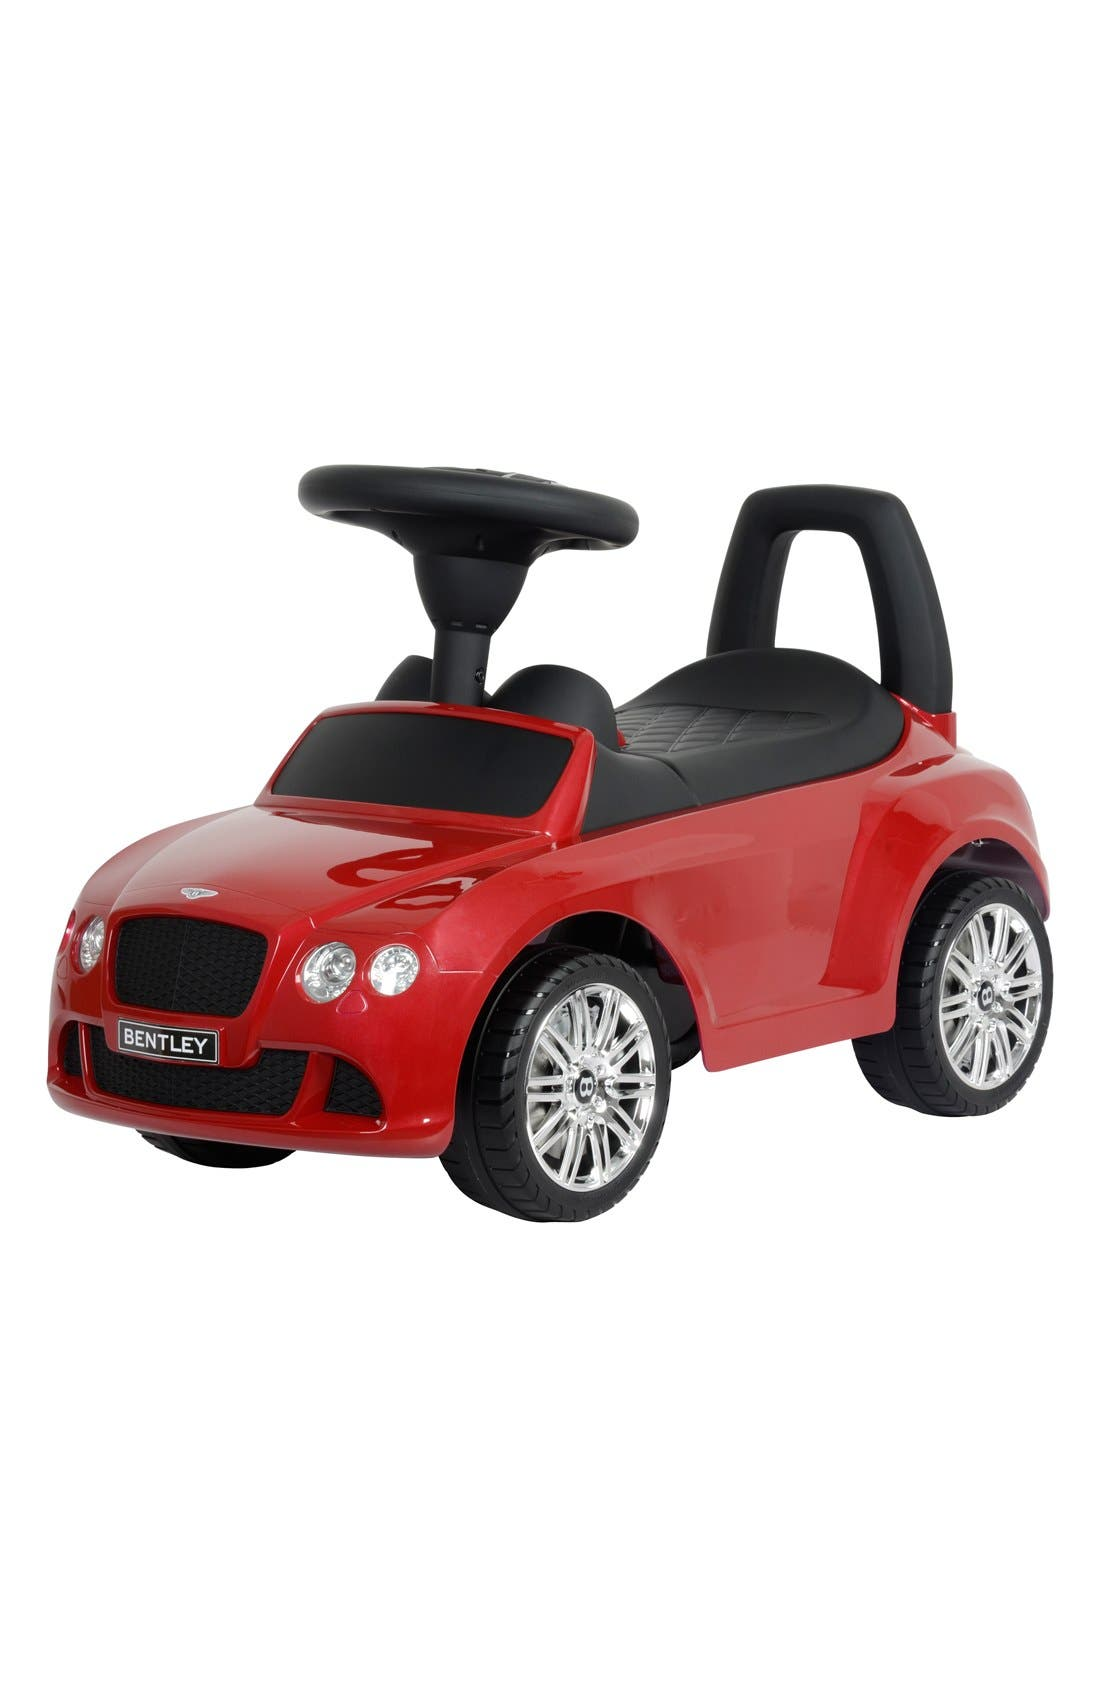 Main Image - Best Ride on Cars 'Bentley' Ride-On Push Car